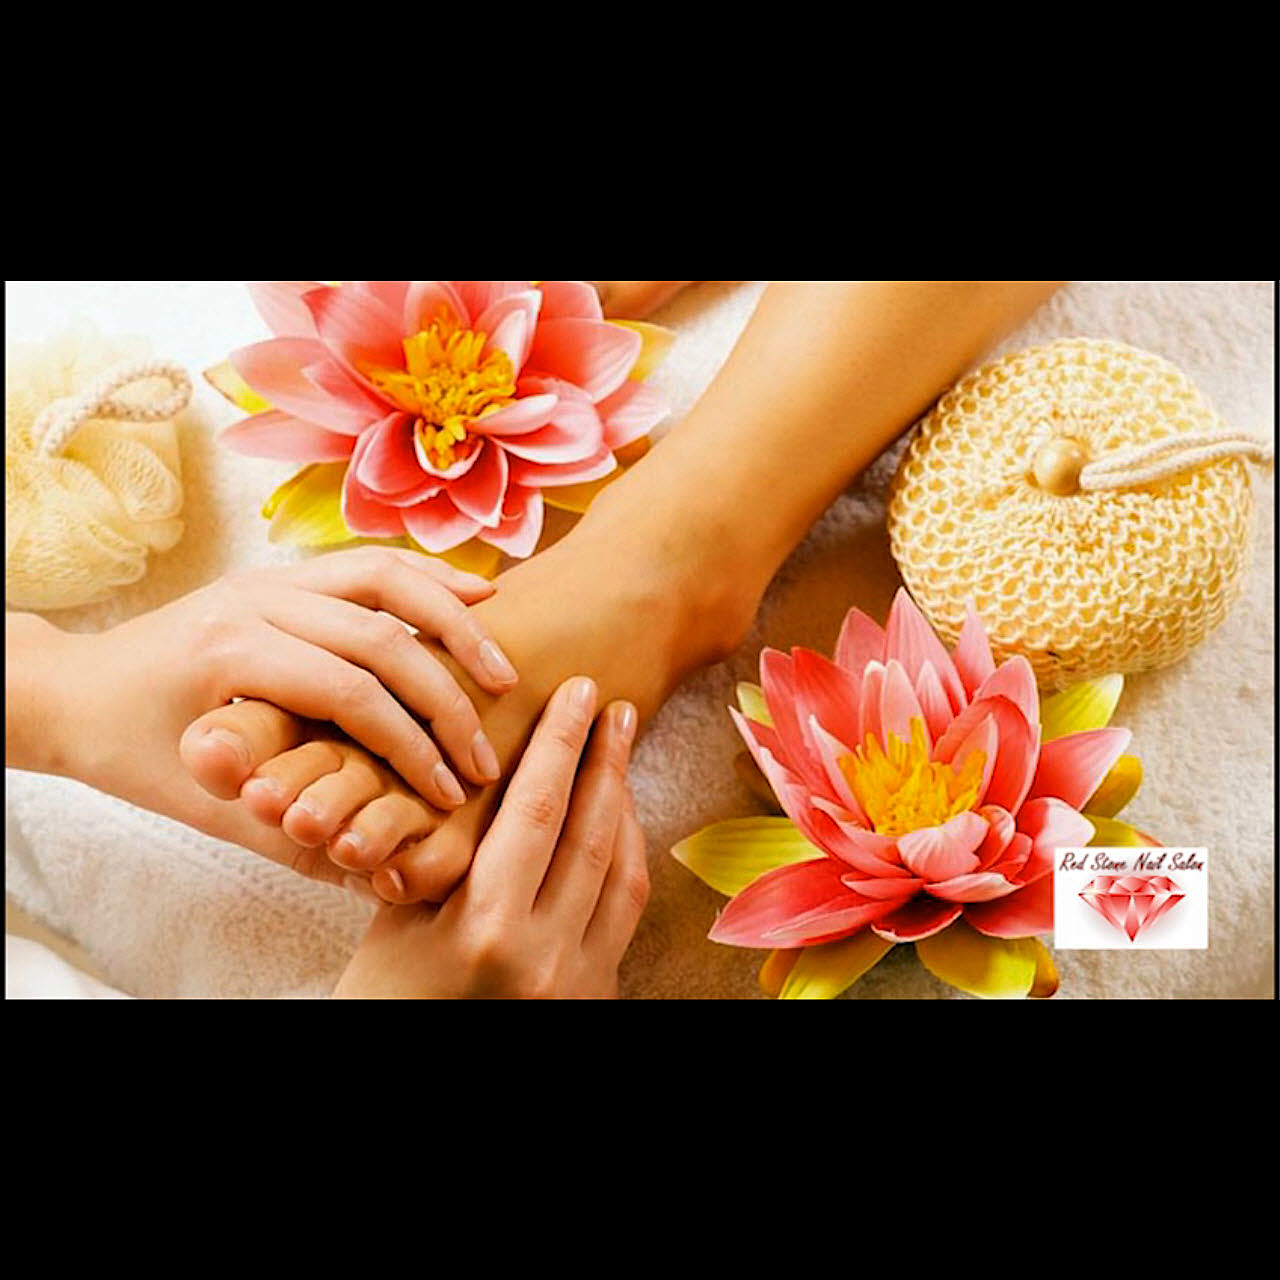 Red Stone Nail Salon - Nail Salons - 7057422525